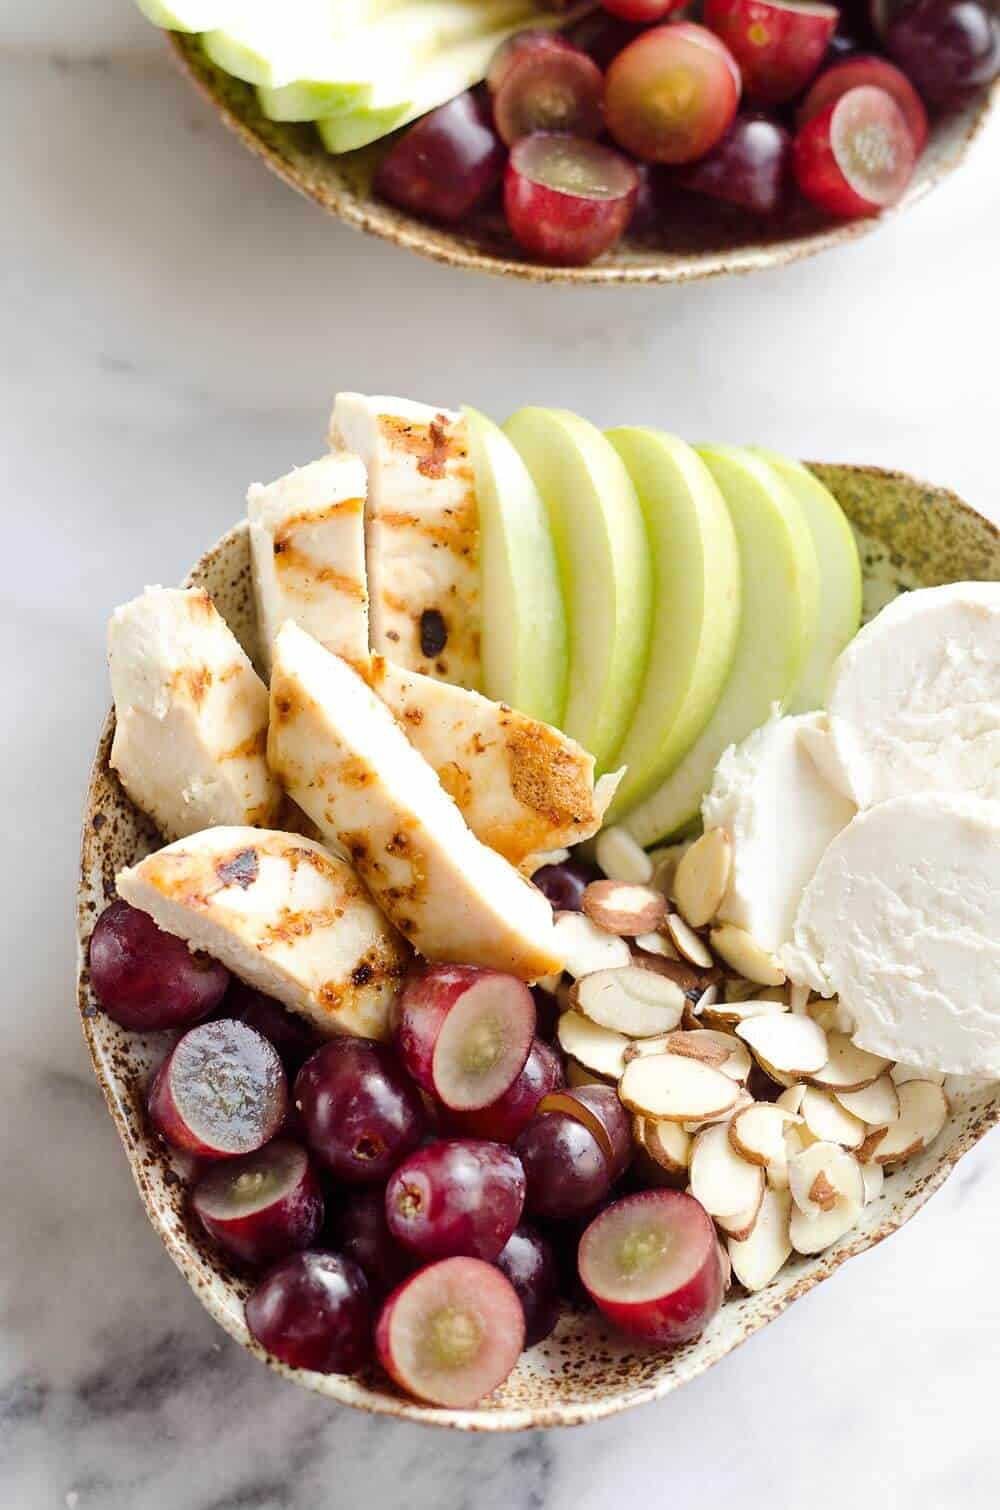 Fruit & Goat Cheese Chicken Bowls are an easy 5 ingredient recipe for a healthy dinner loaded with sweet and savory flavors. Tender chicken breasts are paired with juicy grapes, apples, almonds and creamy honey goat cheese for an amazingly simple and protein packed meal ready in only 15 minutes!